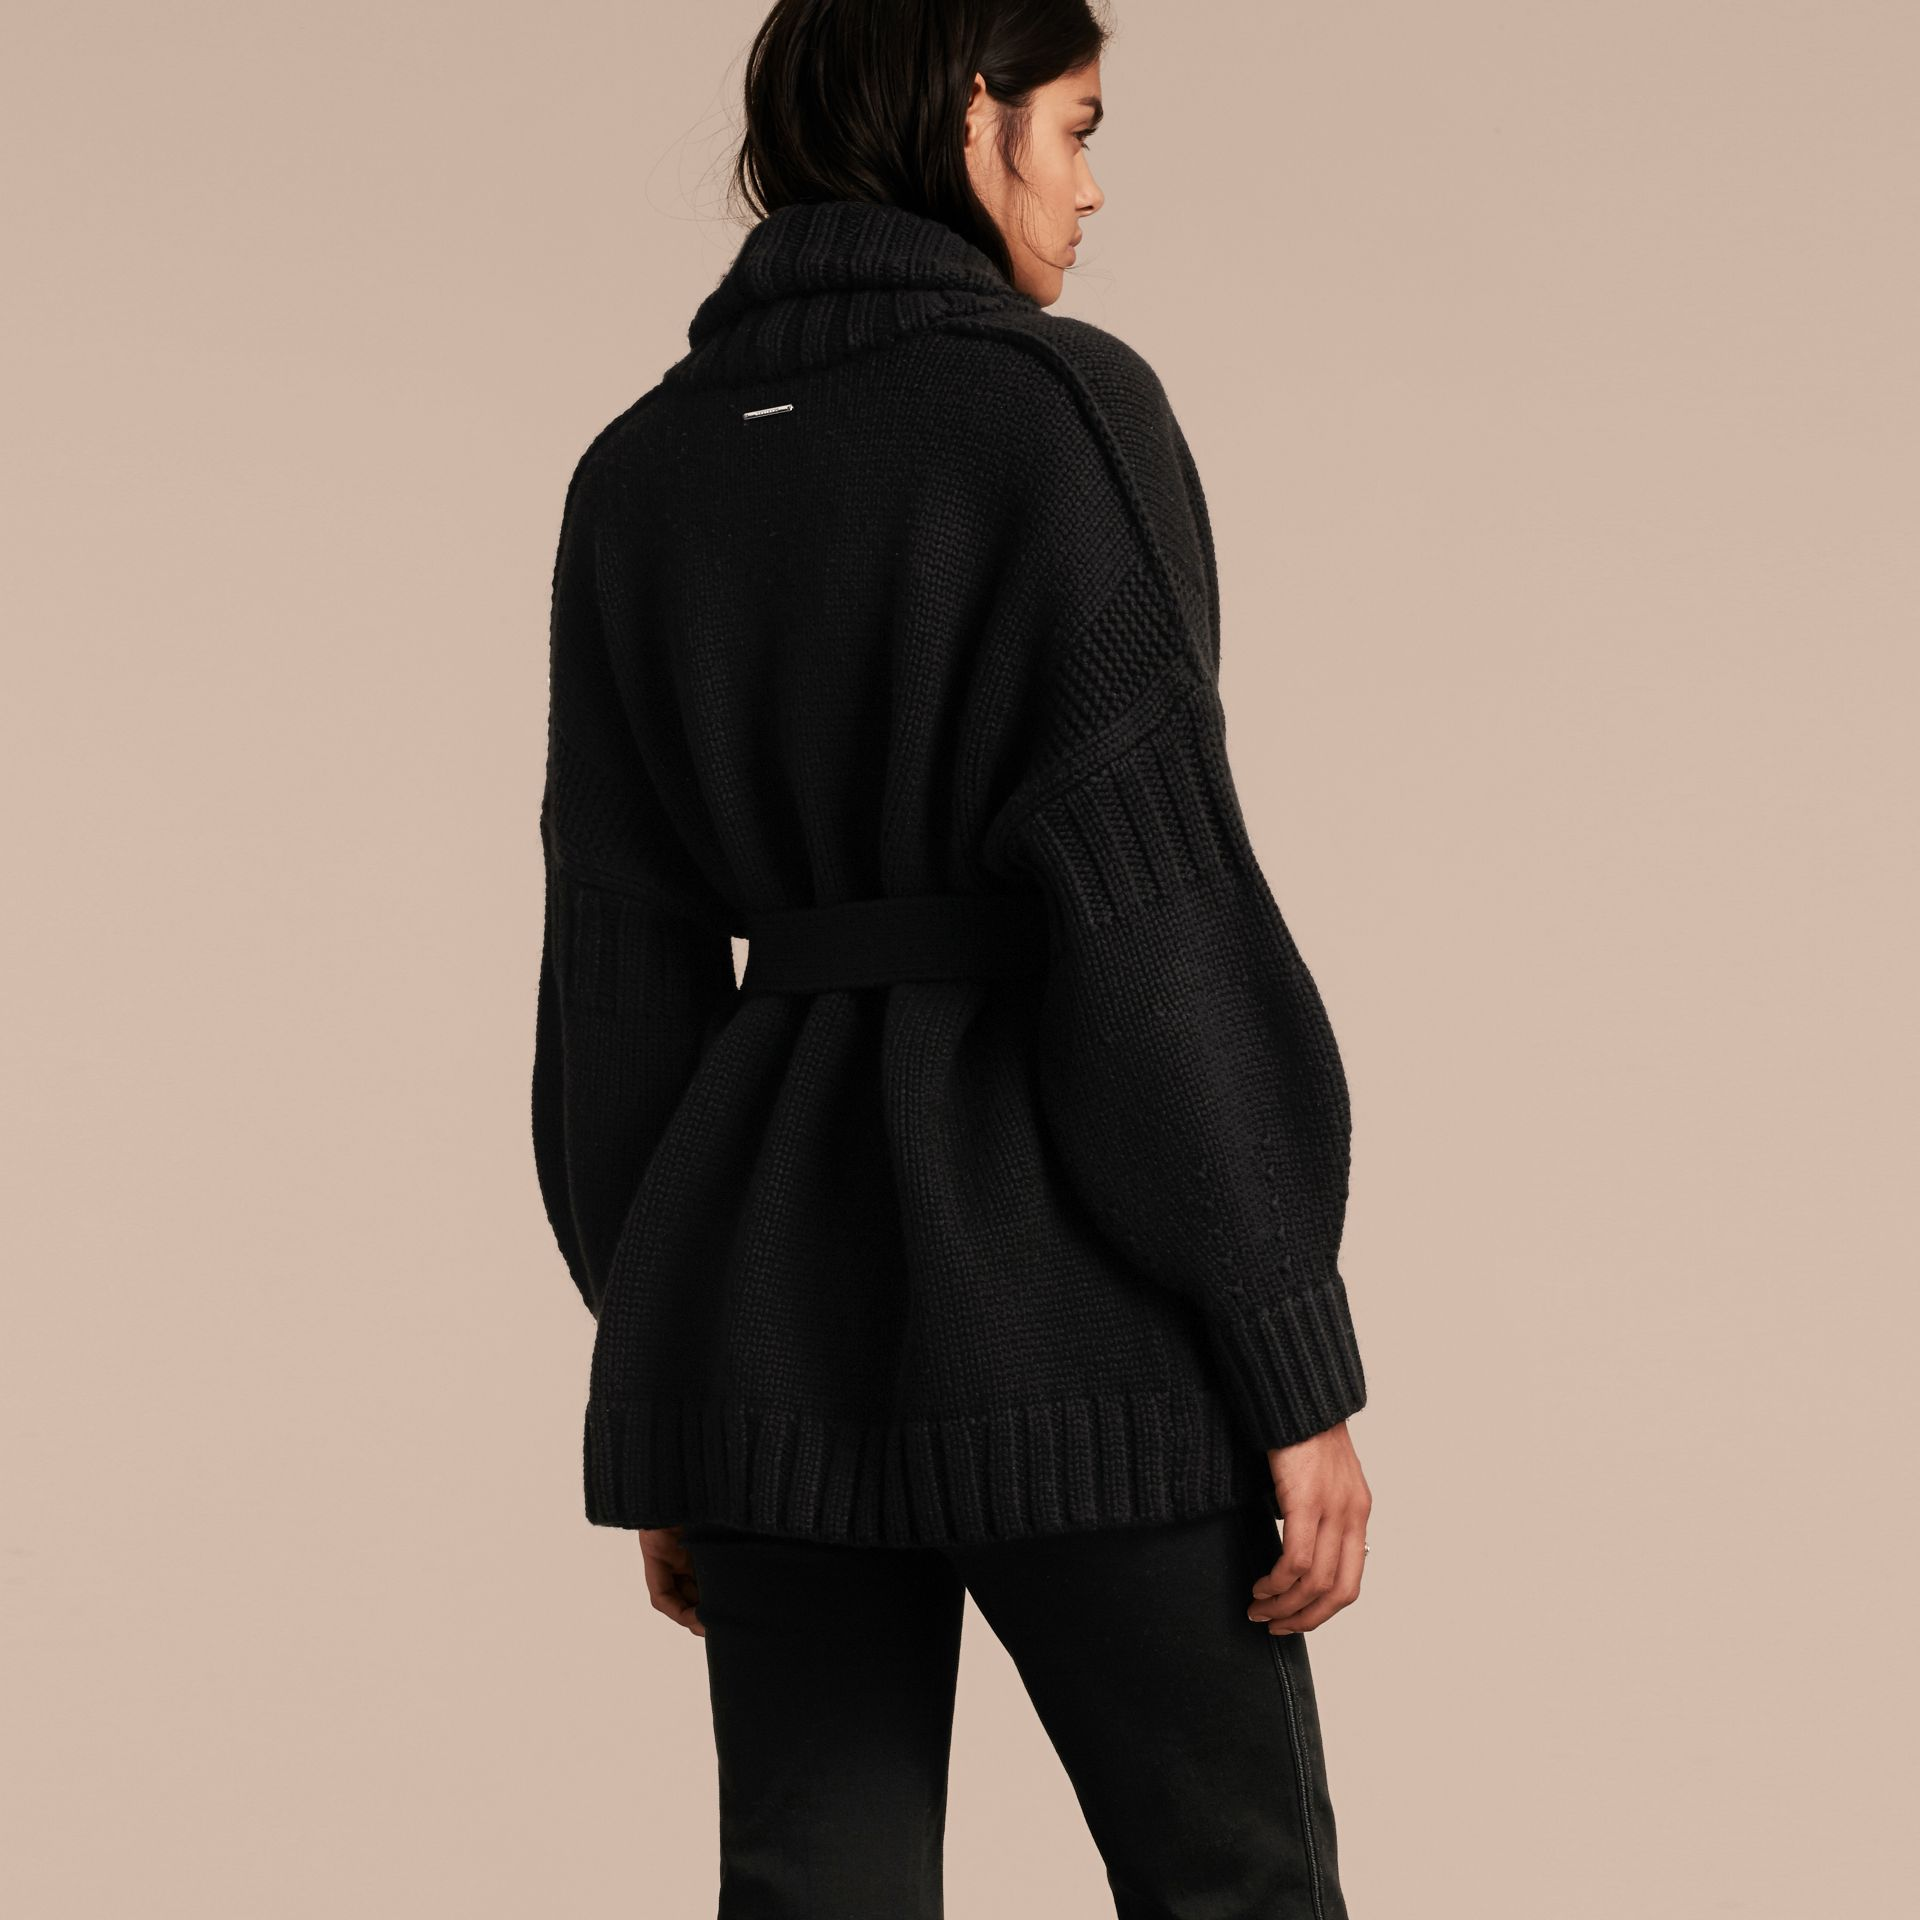 Knitted Wool Cashmere Belted Cardigan Jacket Black - gallery image 3